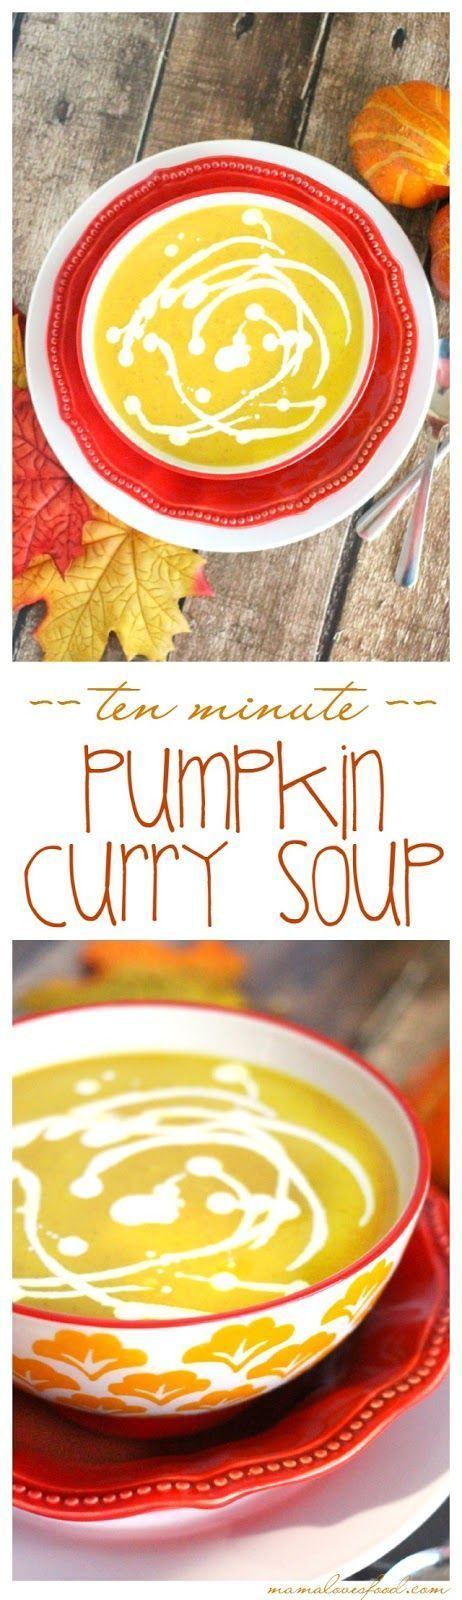 Pumpkin Curry Soup - this soup recipe takes ten minutes from start to finish and is DELICIOUS.  Just dump it all in a pot and stir until heated, doesn't get any easier!!!  YUM